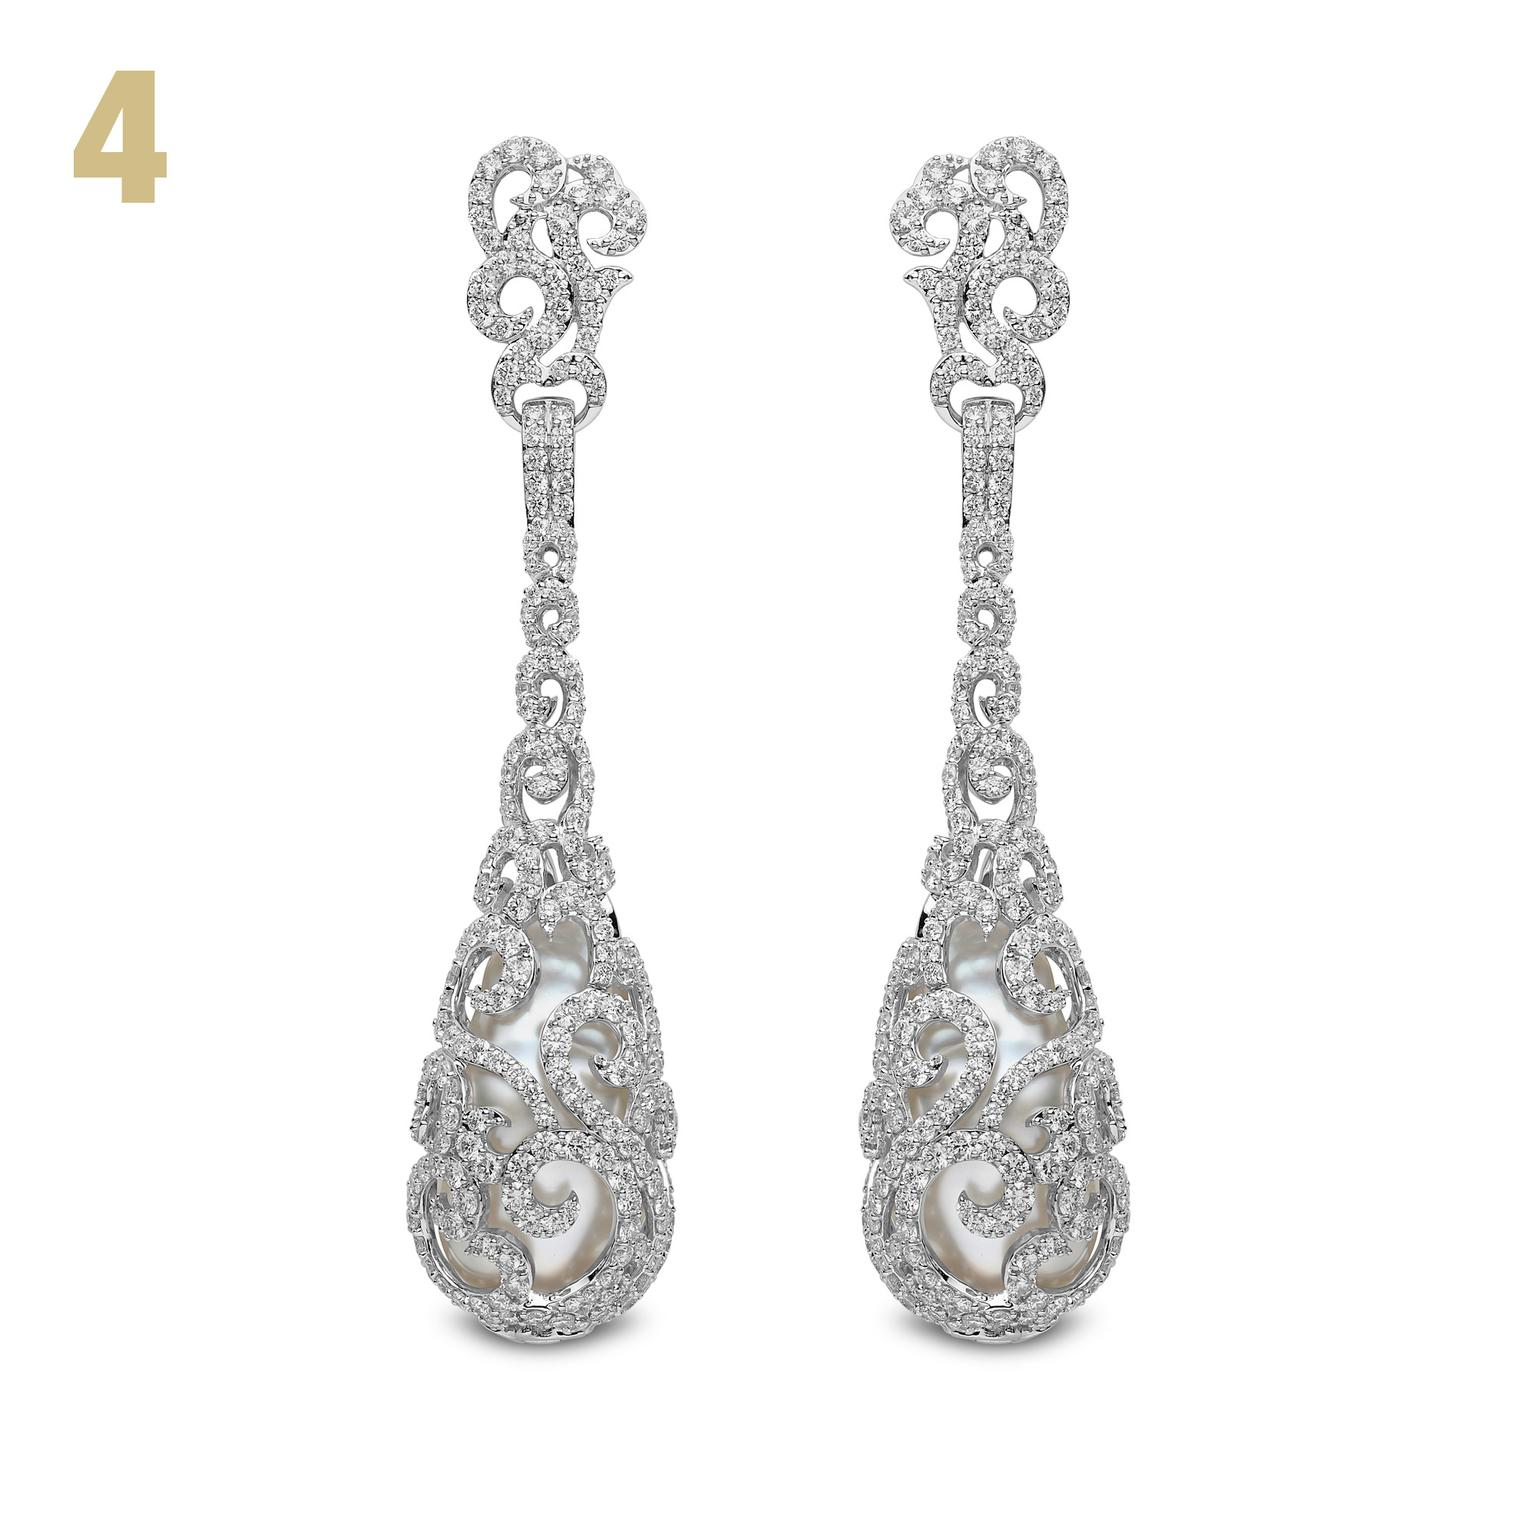 Mayfair baroque South Sea pearl earrings with diamonds